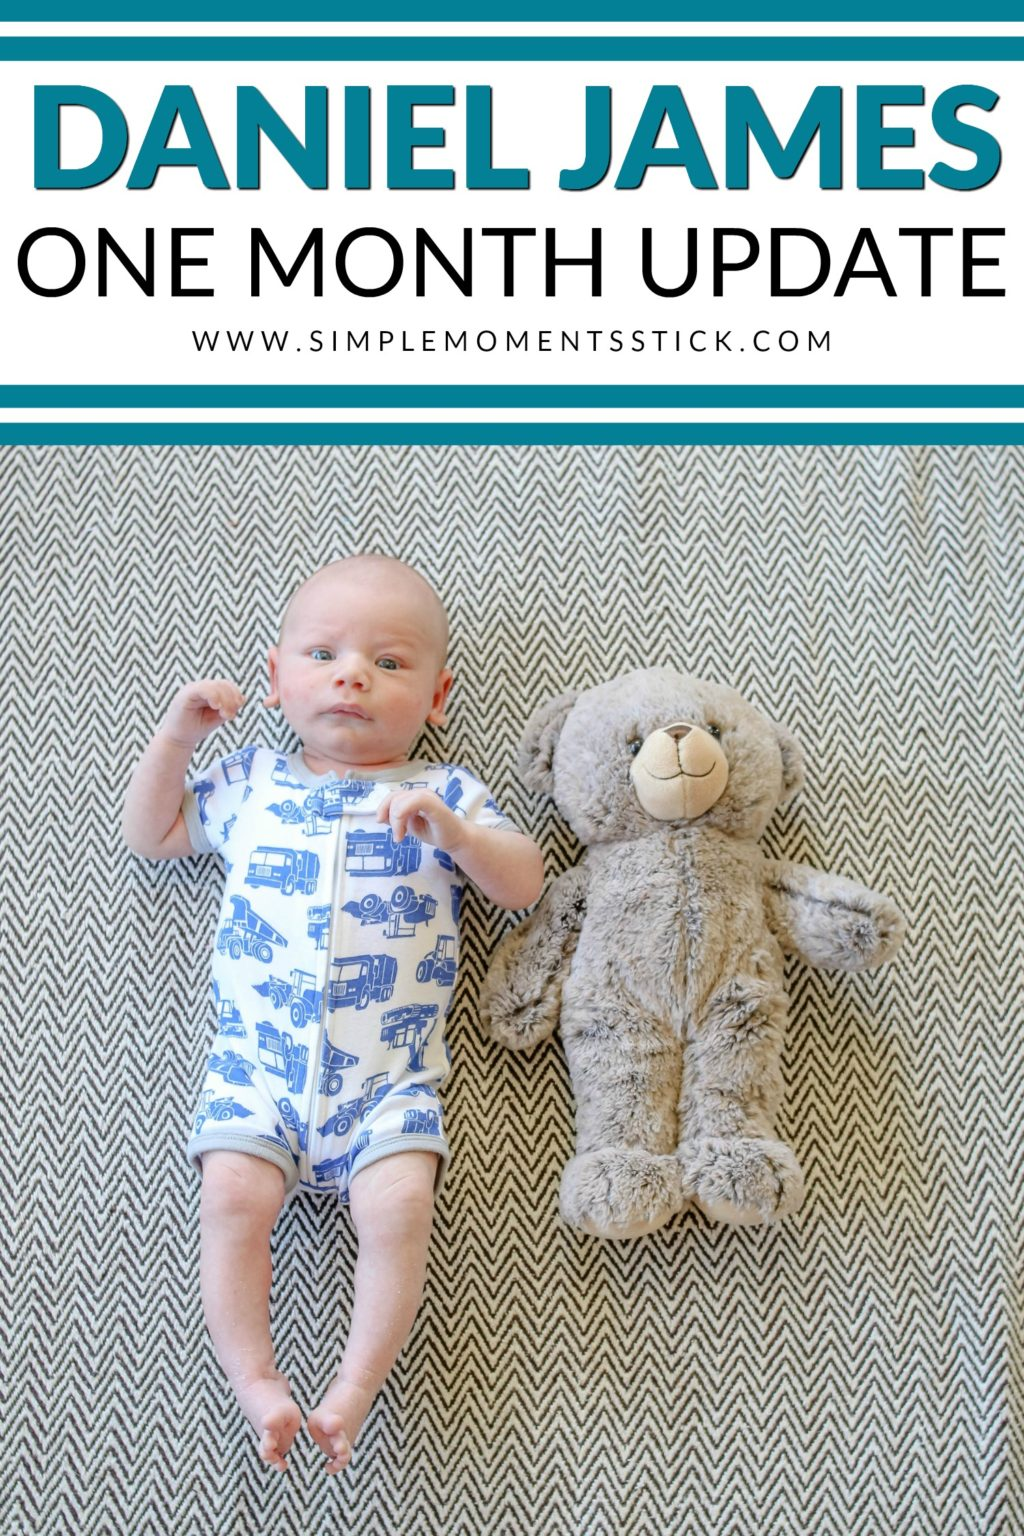 What is a baby doing at one month old?